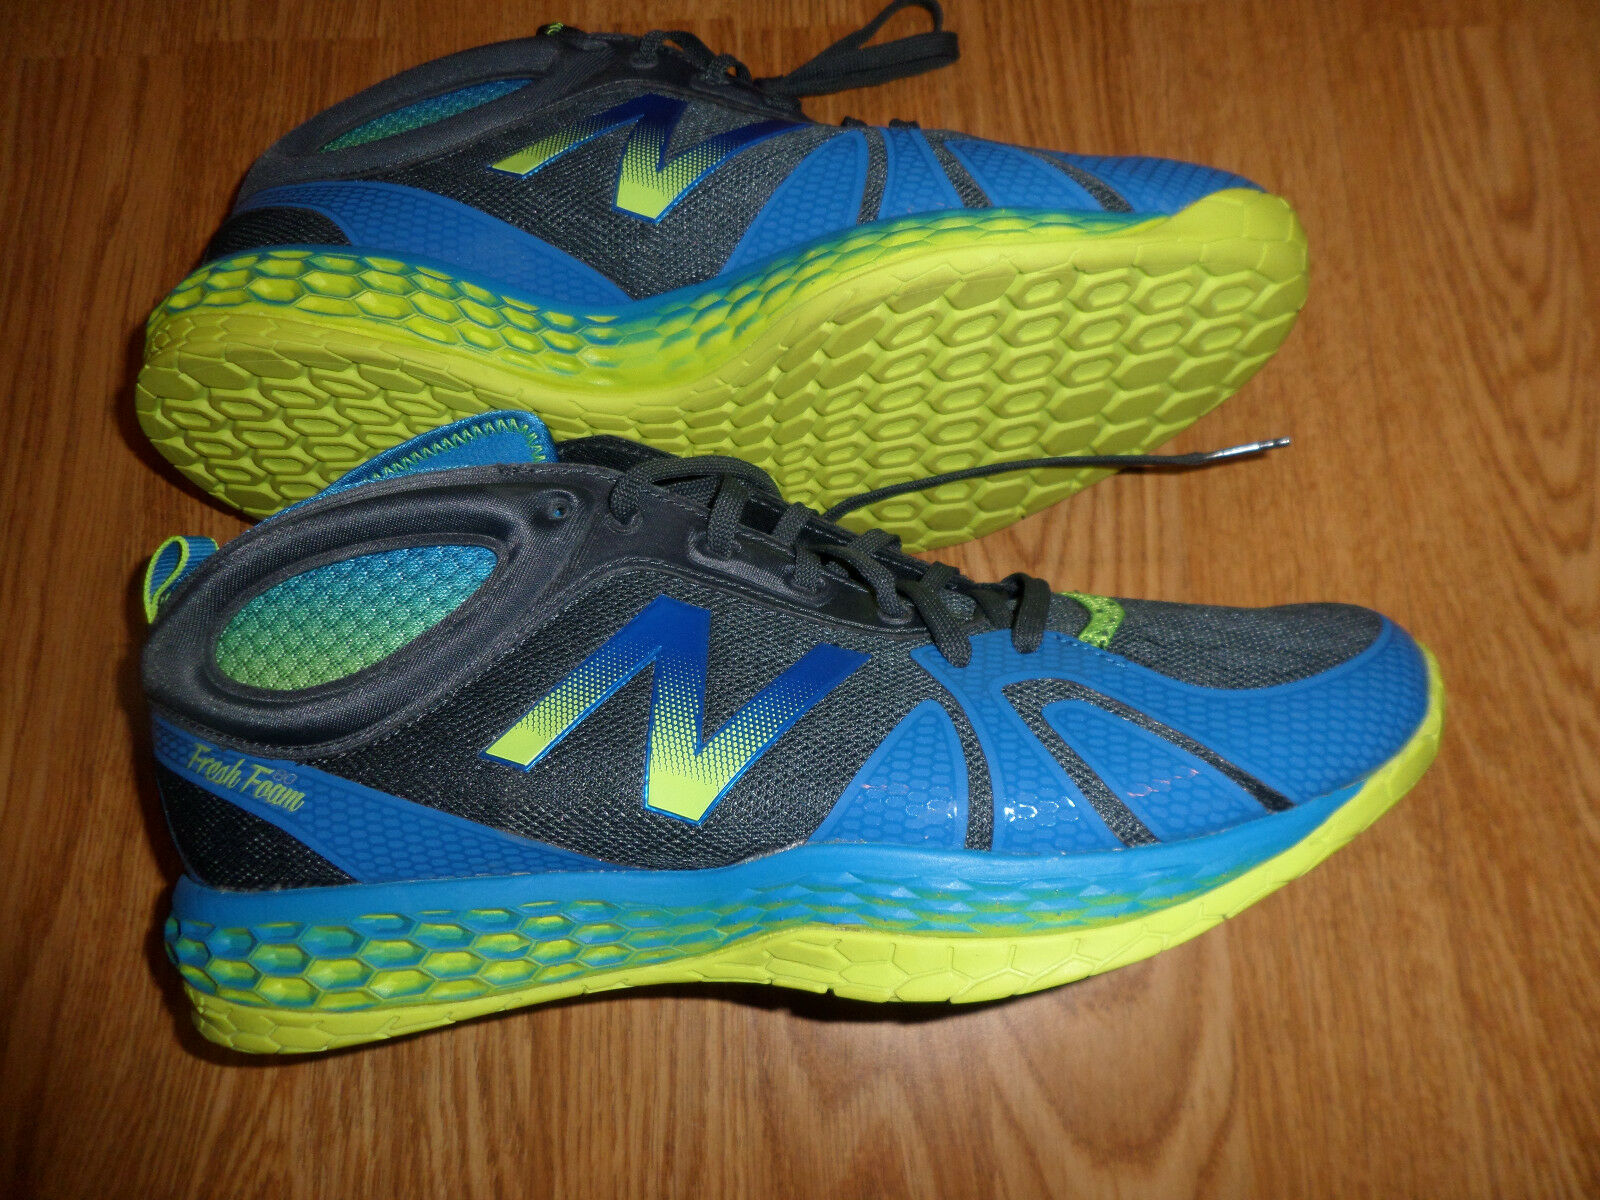 NEW BALANCE FRESH FOAM 80 CROSS TRAINING SHOES MEN'S 10.5 M RTL  100